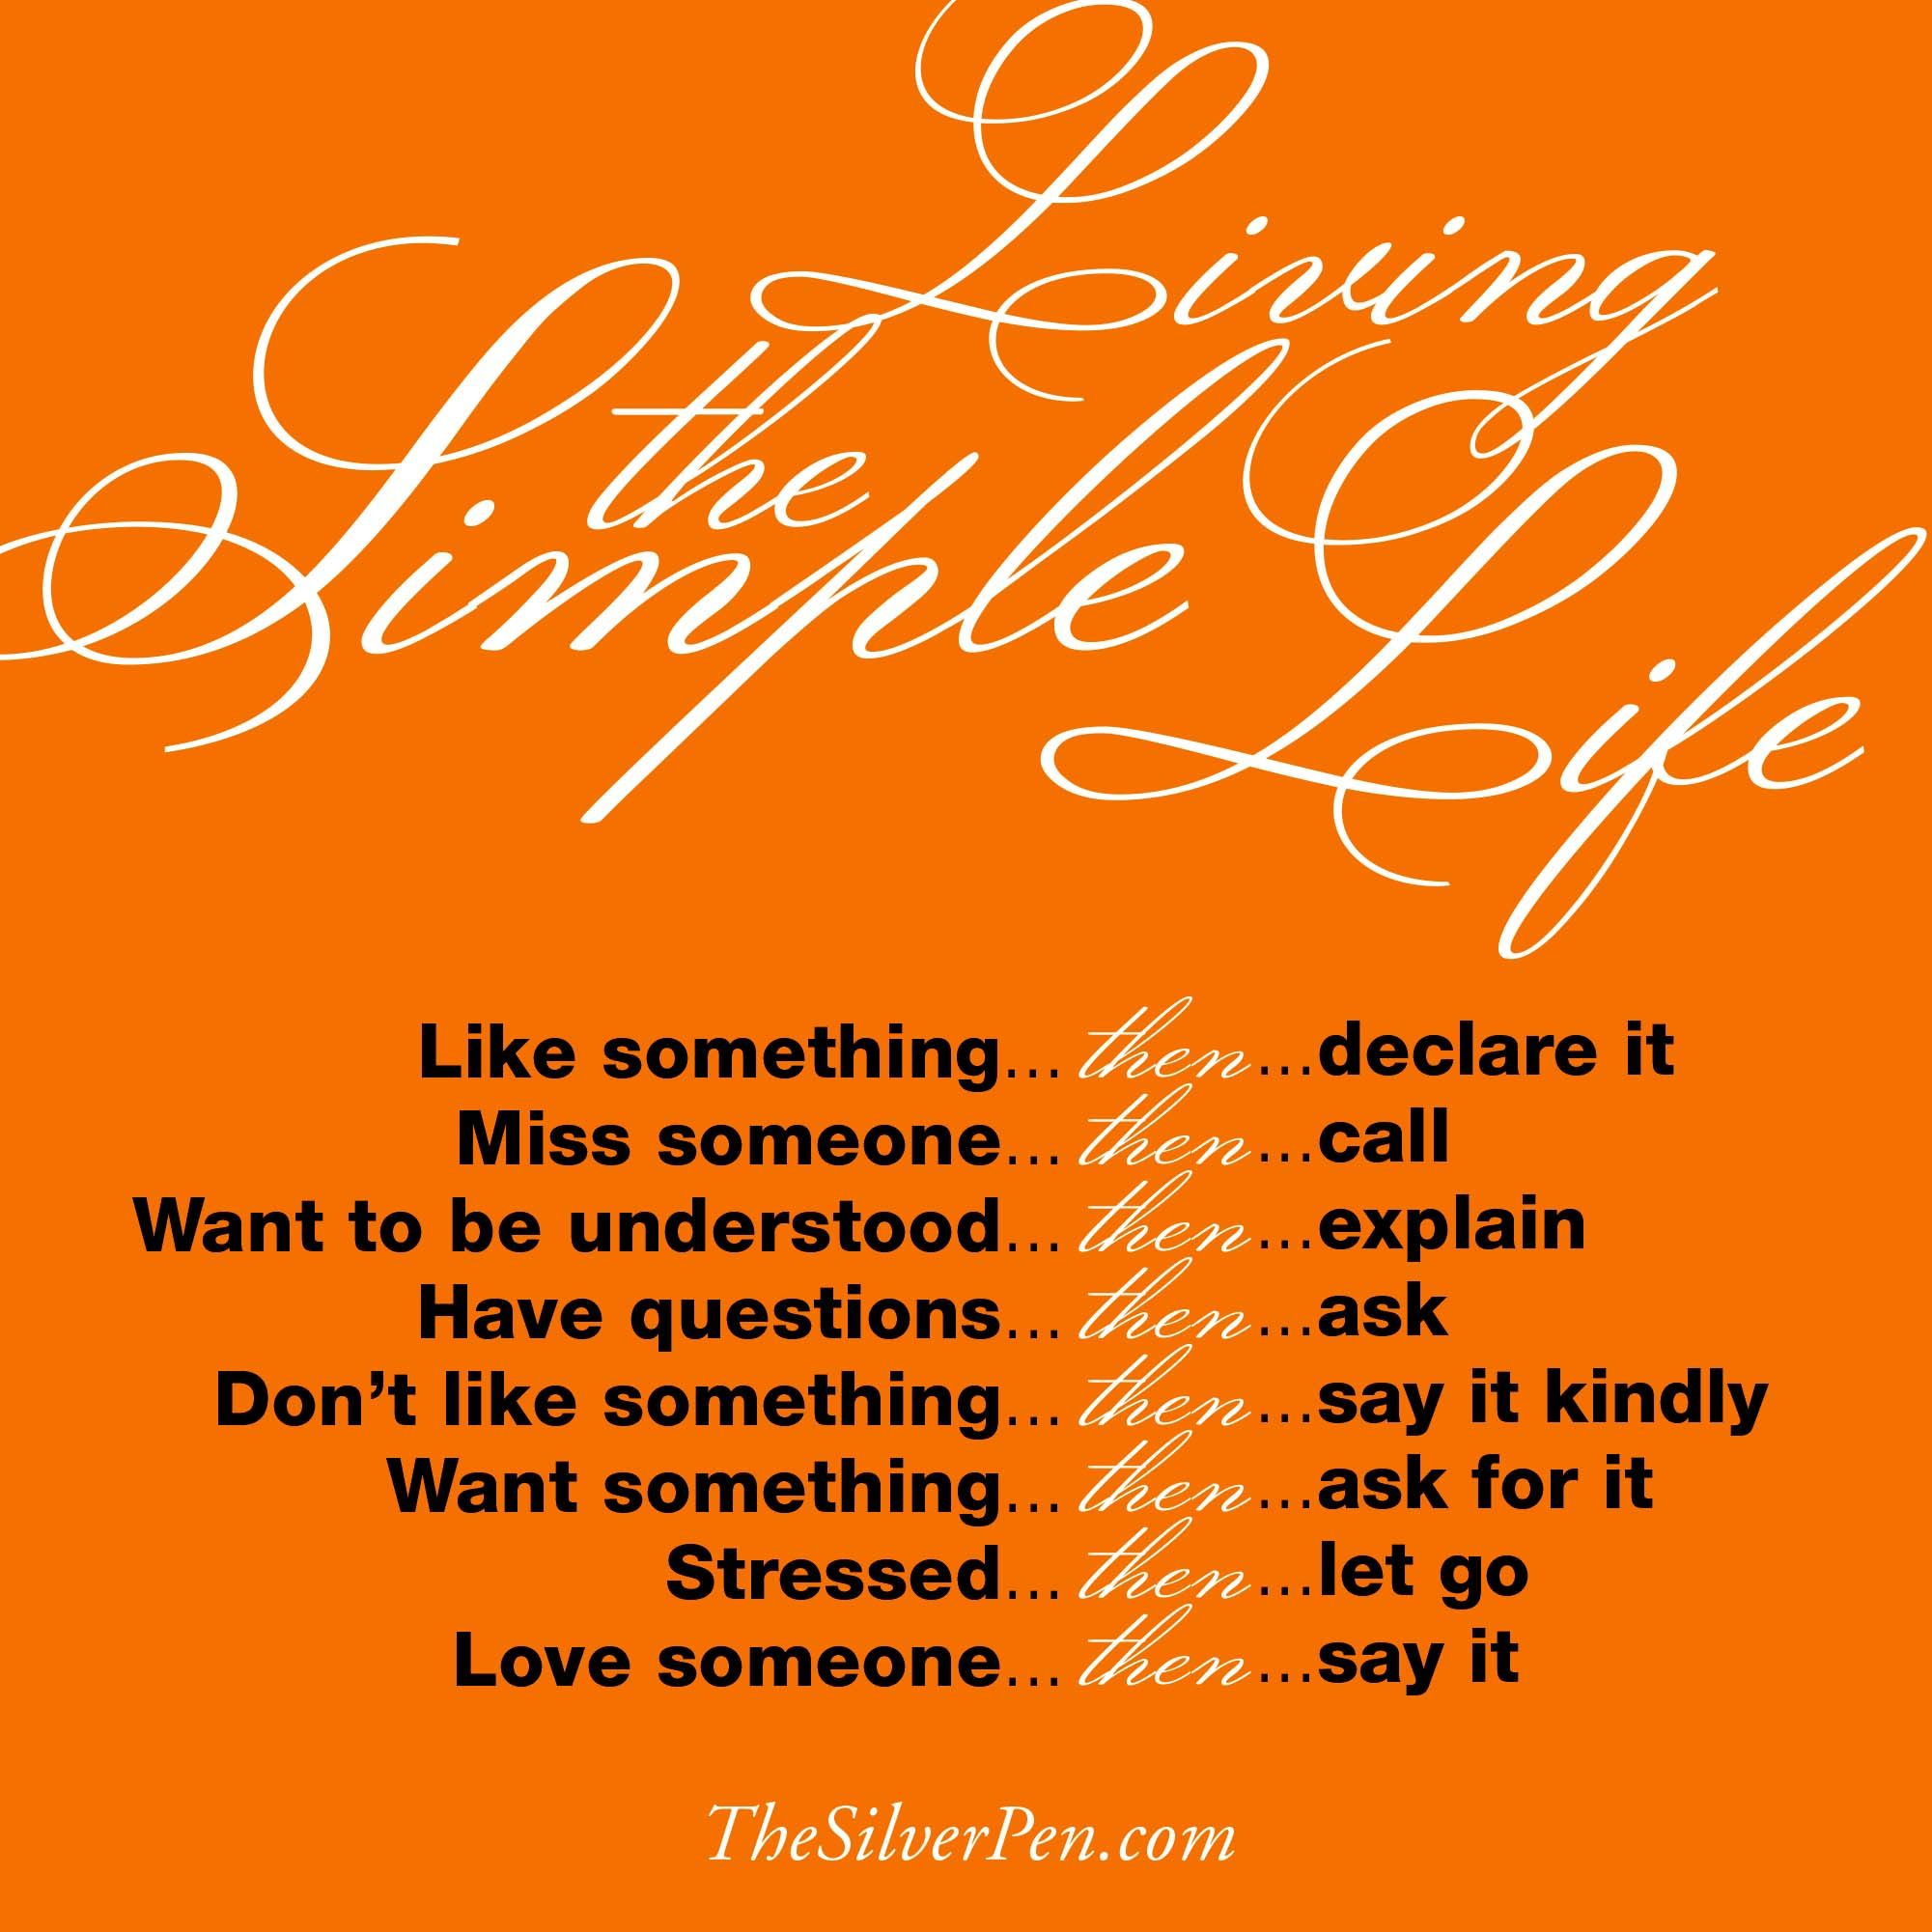 Celebrating Life Quotes The Art Of Living Simply  Inspirational Picture Quotes About Life